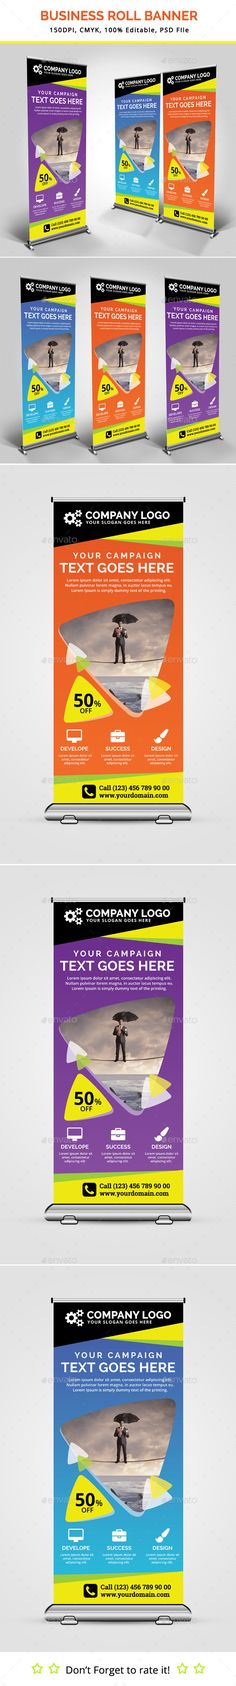 Design FREEBIE! High quality, print ready roll up banner template - template